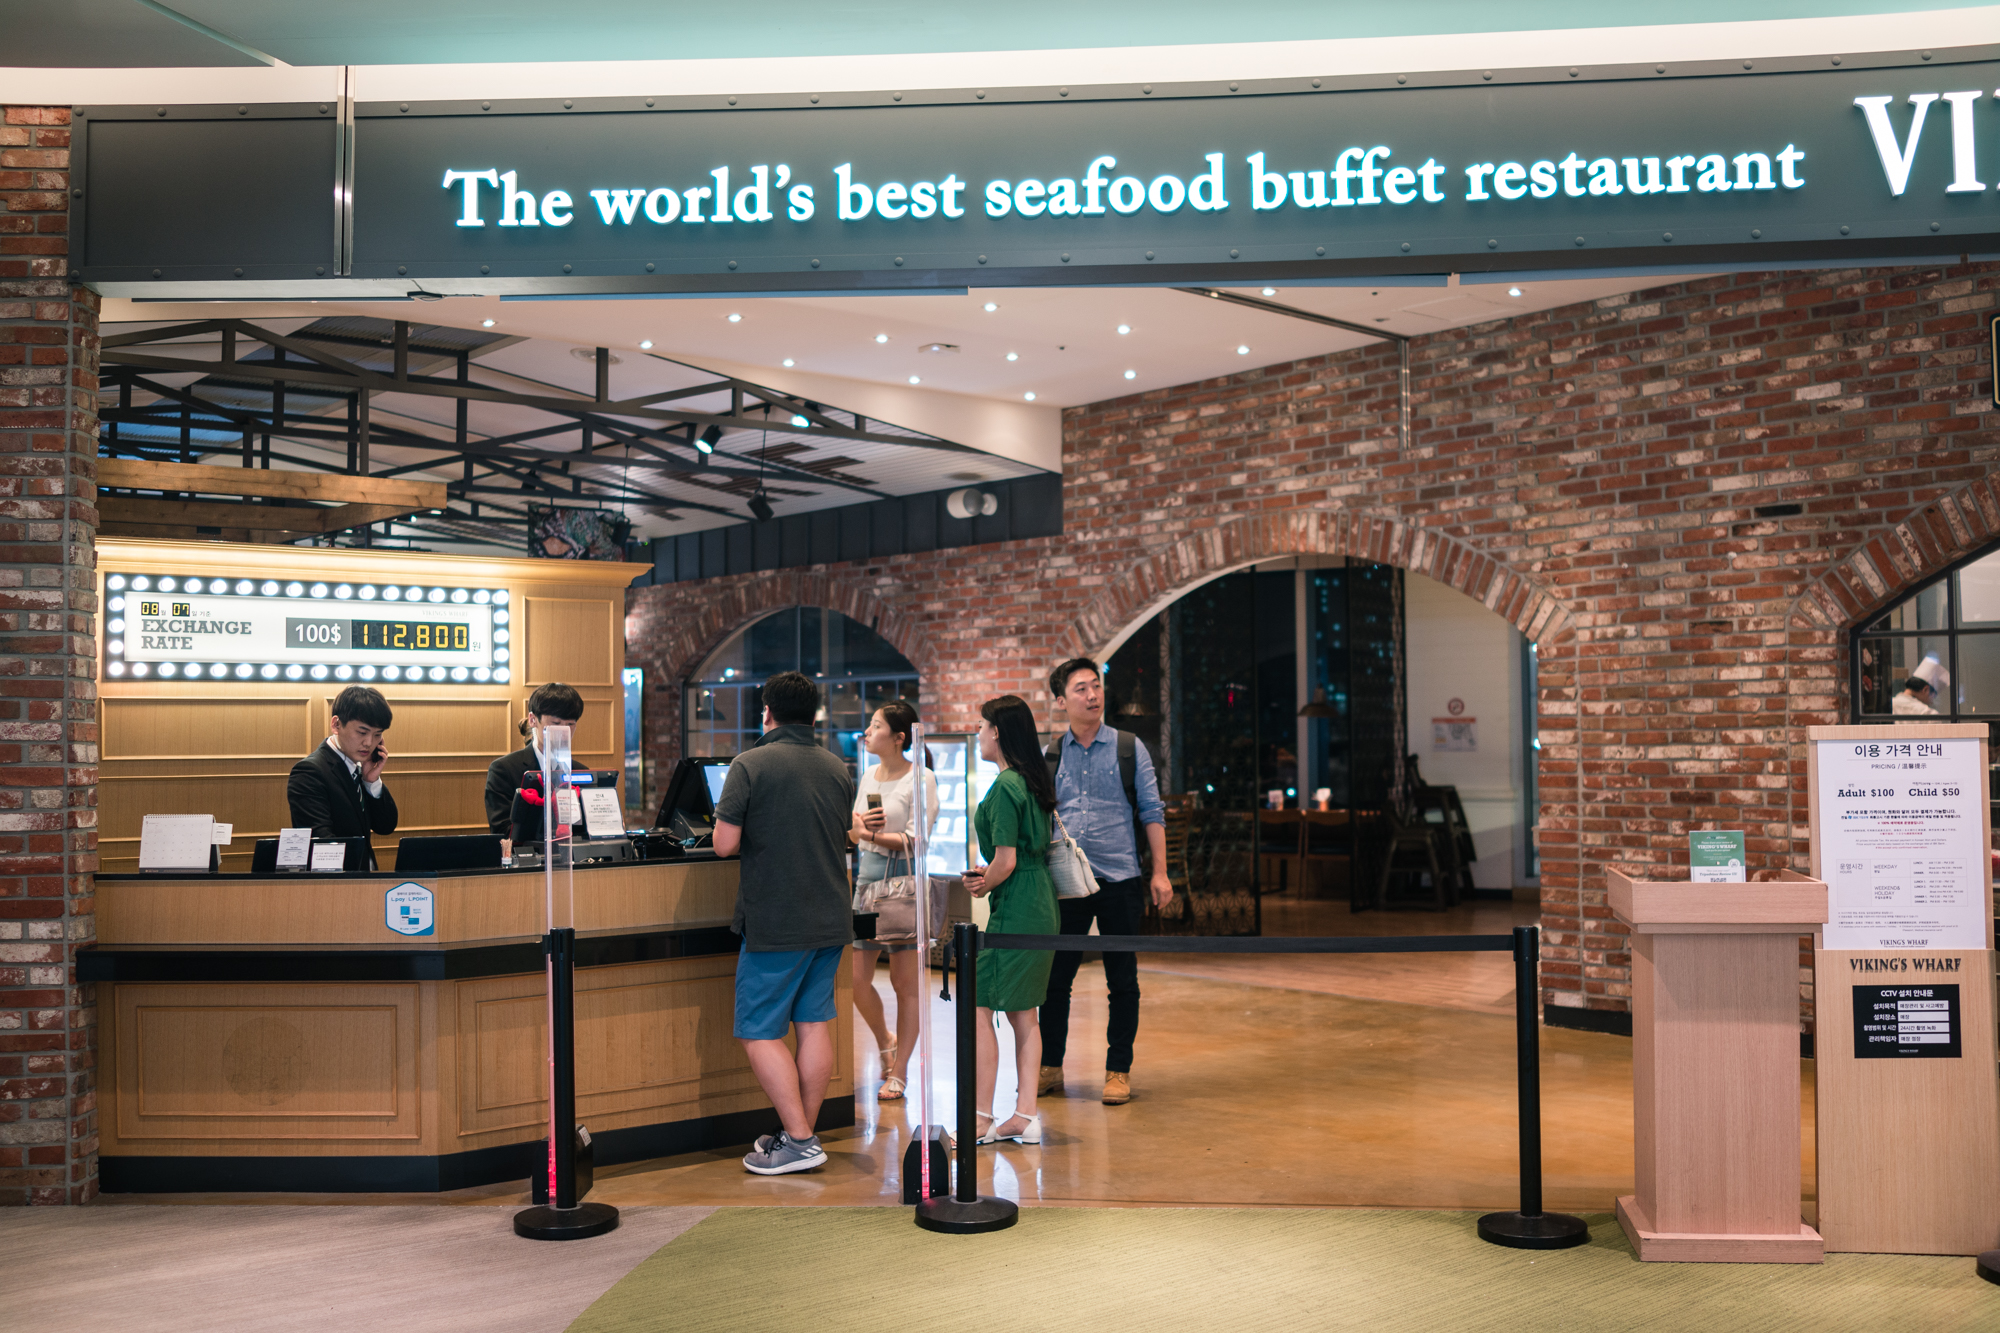 Vikings Warf Seafood Buffet at Lotte World Mall